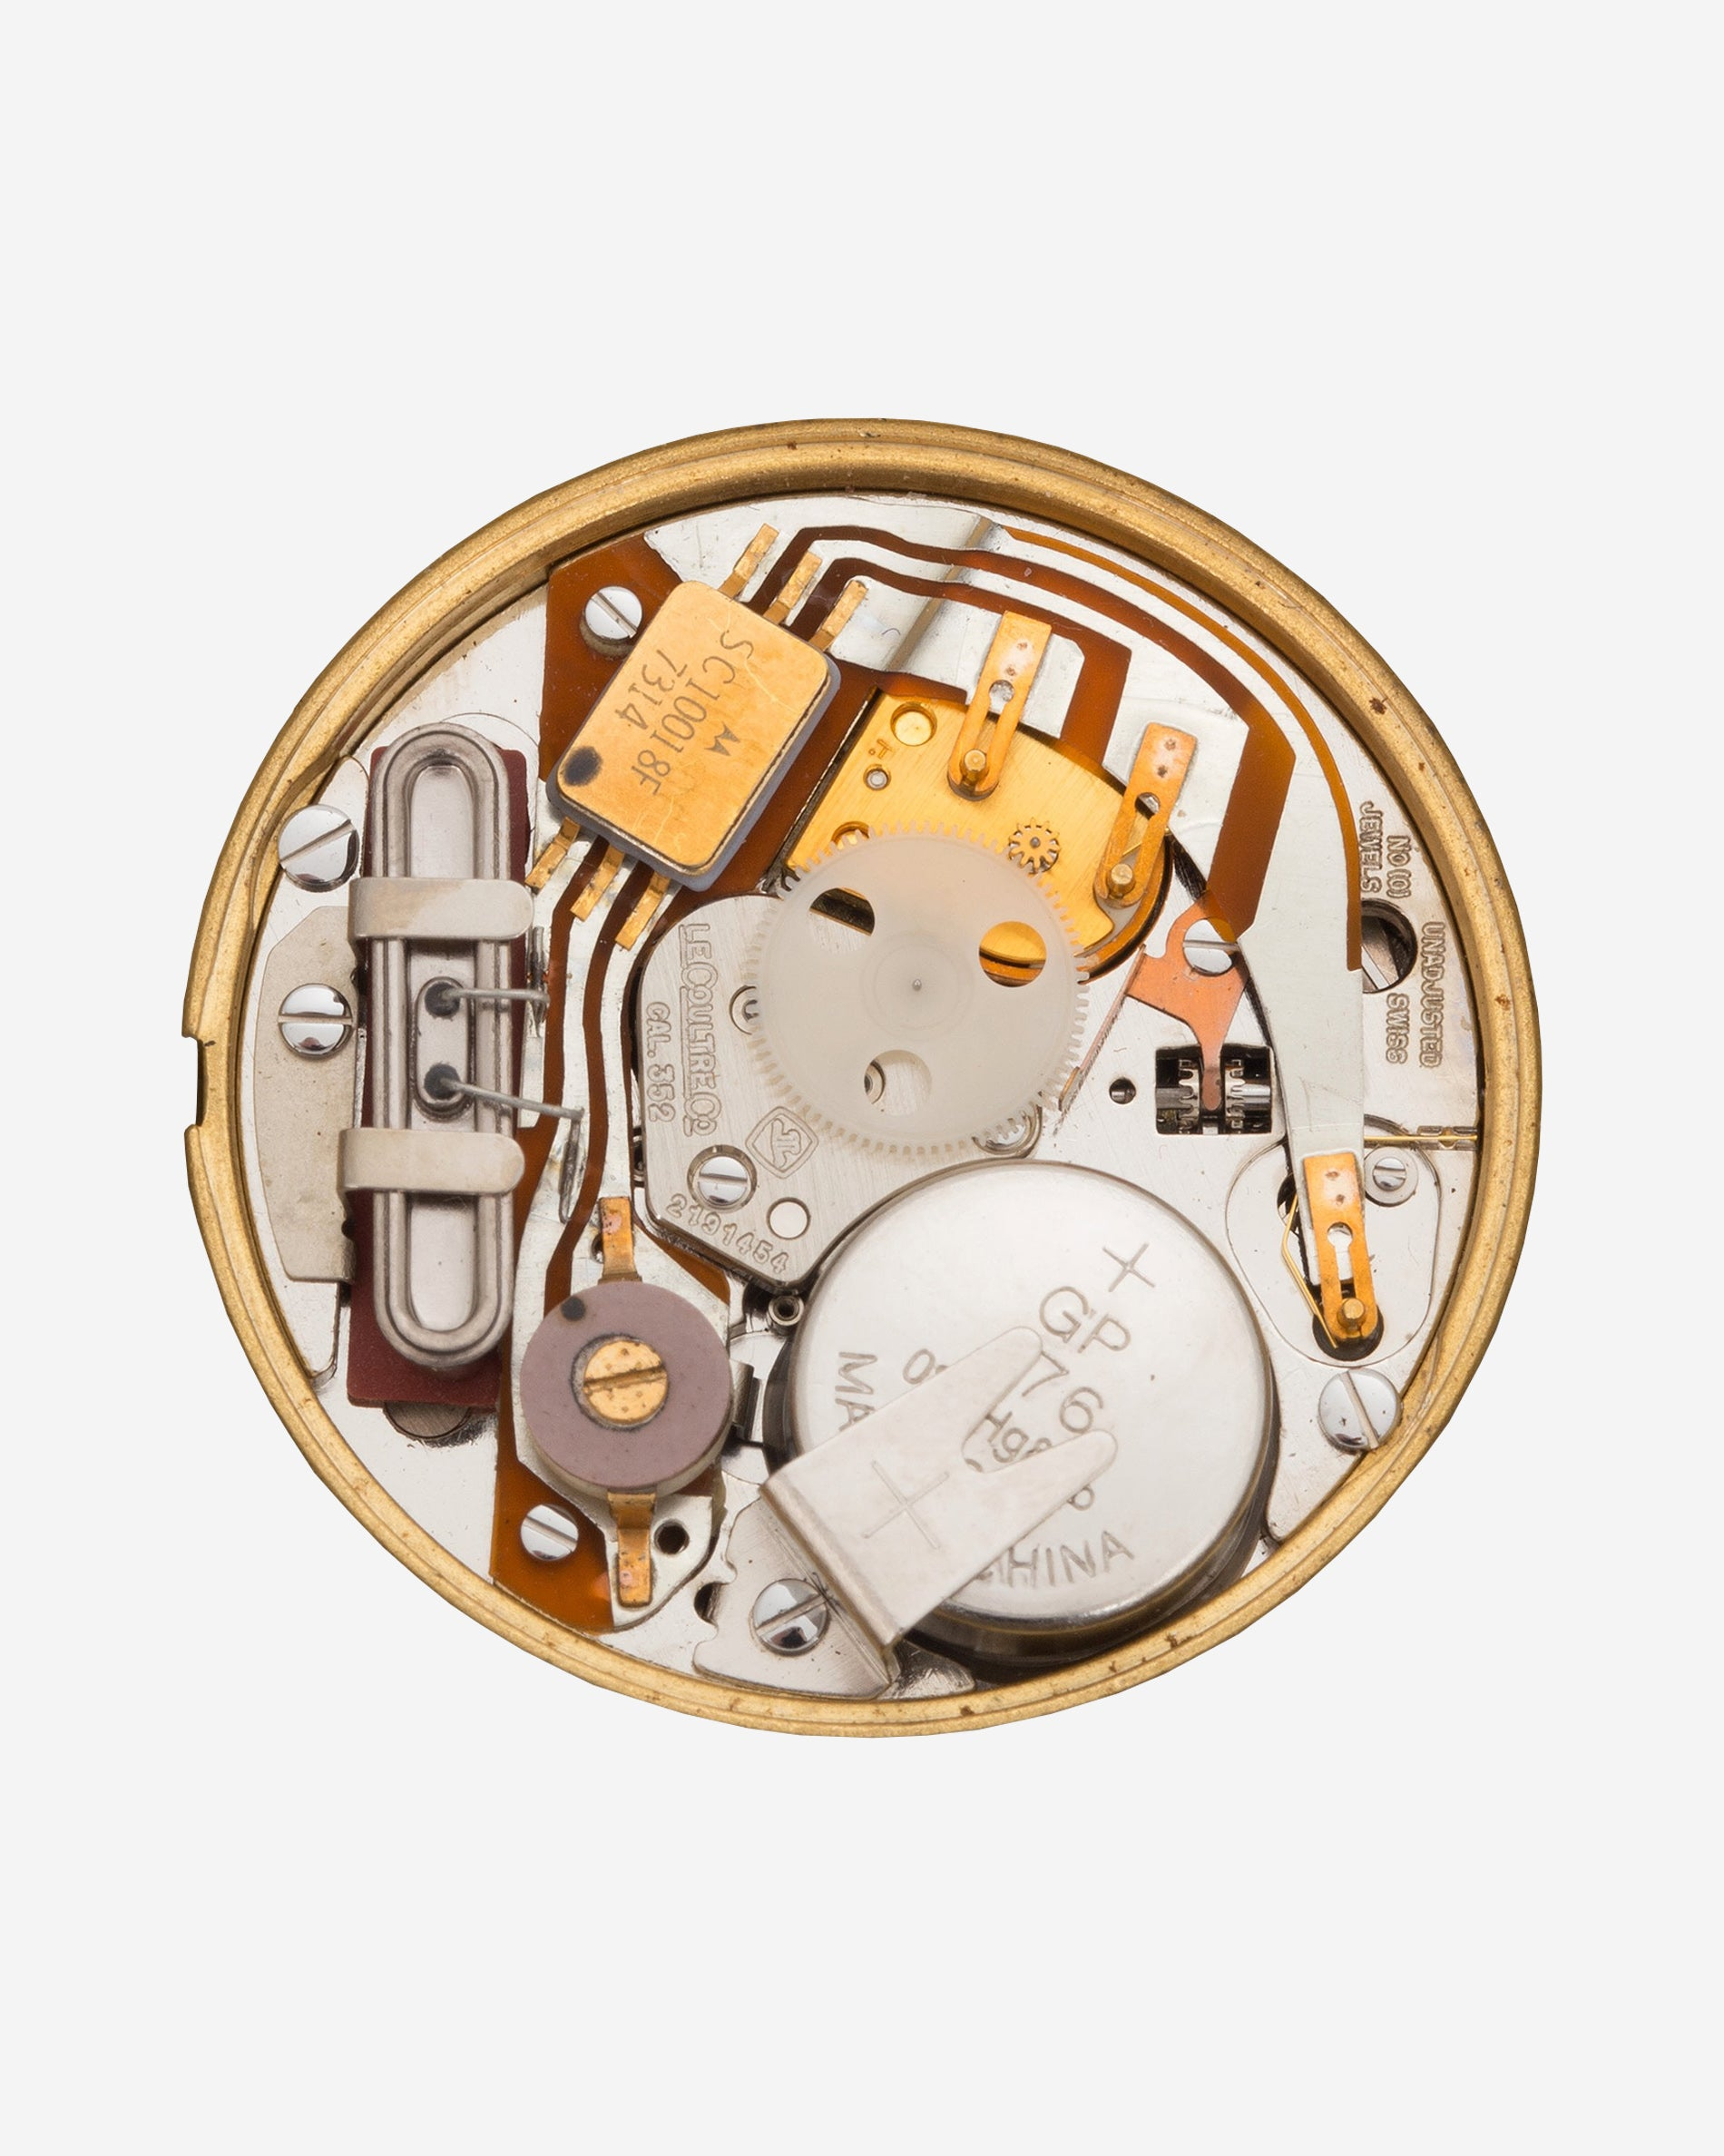 The Jaeger-LeCoultre calibre 352 quartz movement from A Collected Man London